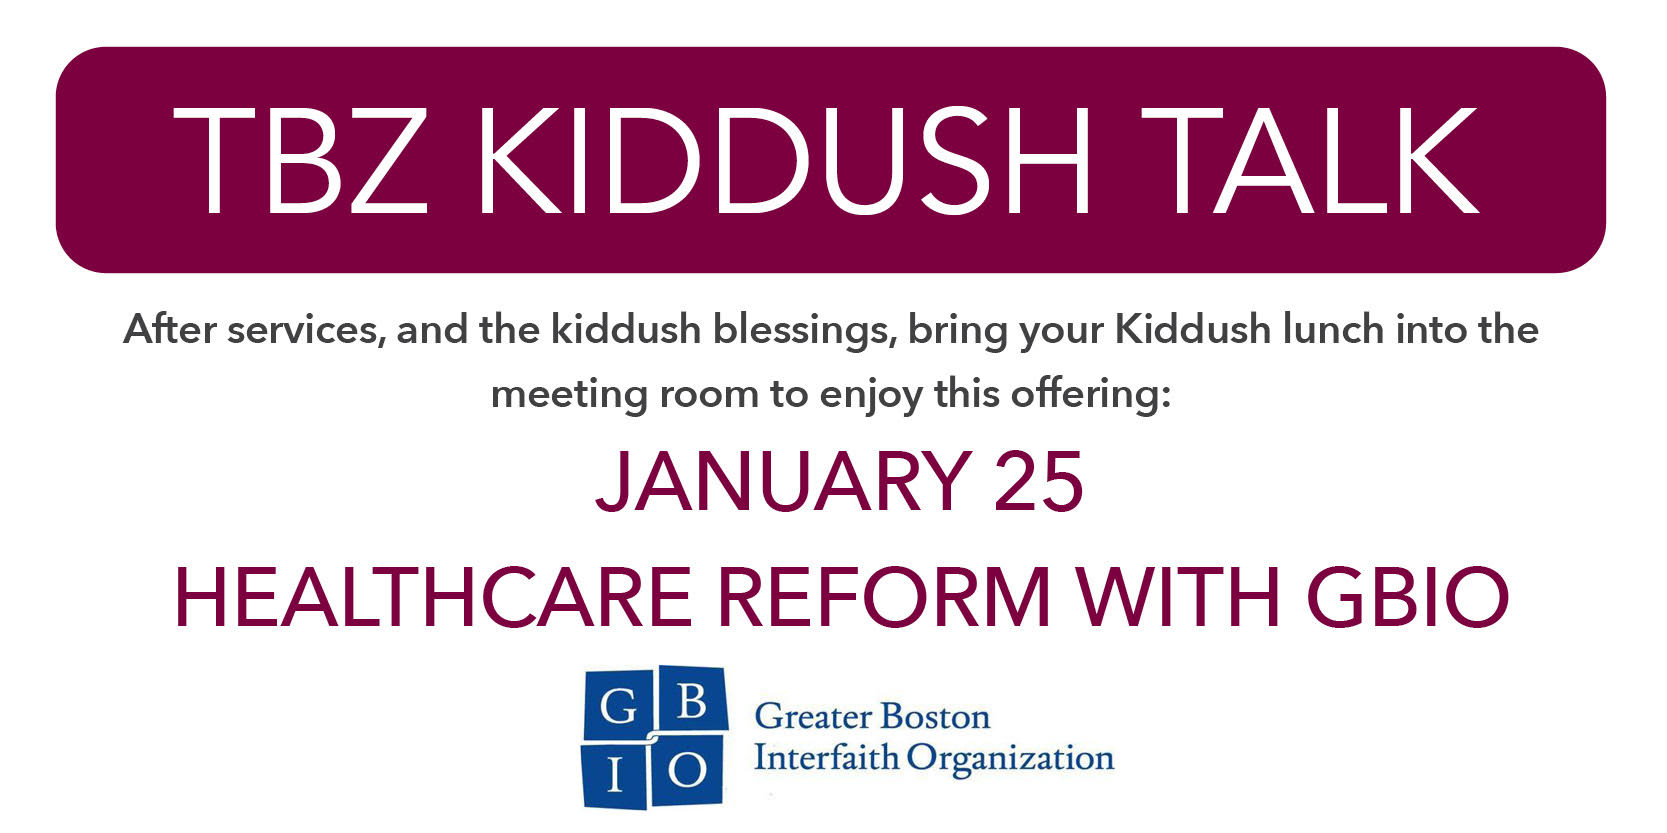 "<a href=""https://www.tbzbrookline.org/event/kiddush-conversation-healthcare-reform-with-gbio.html#""